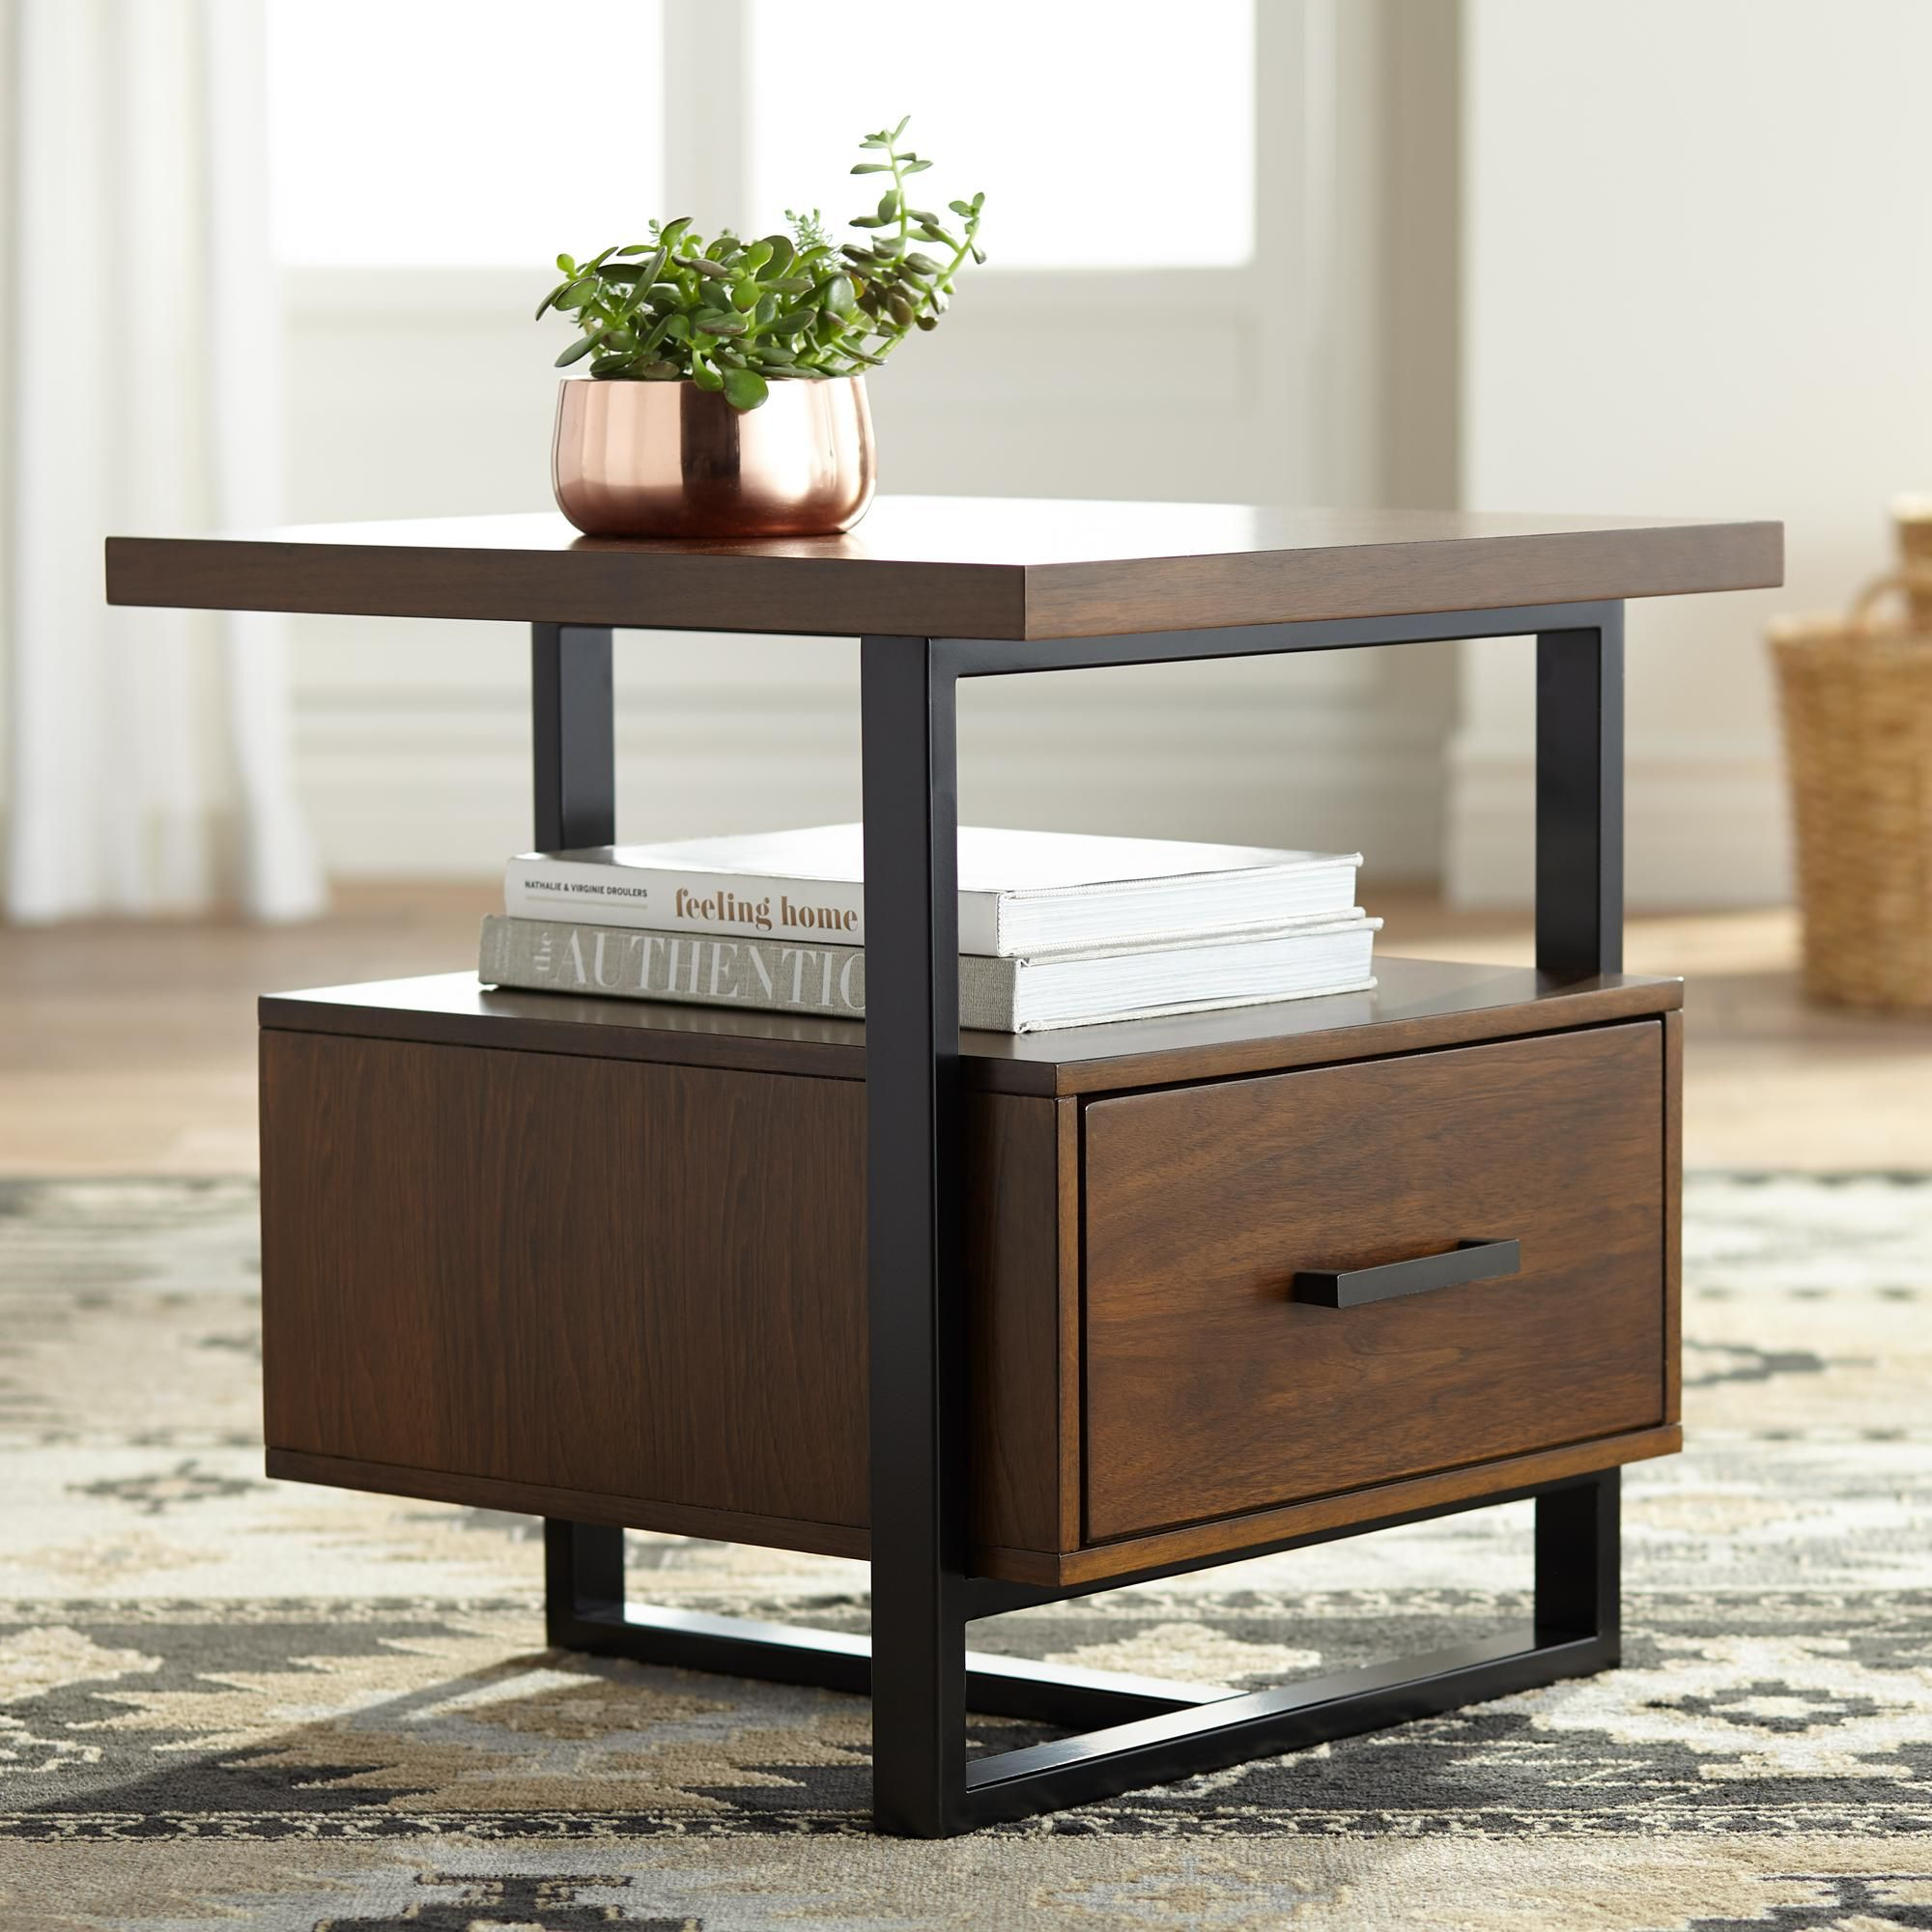 Tables Sedley 22 Wide Walnut 1 Drawer Modern End Table In 2020 Modern End Tables Modern Side Table Welded Furniture